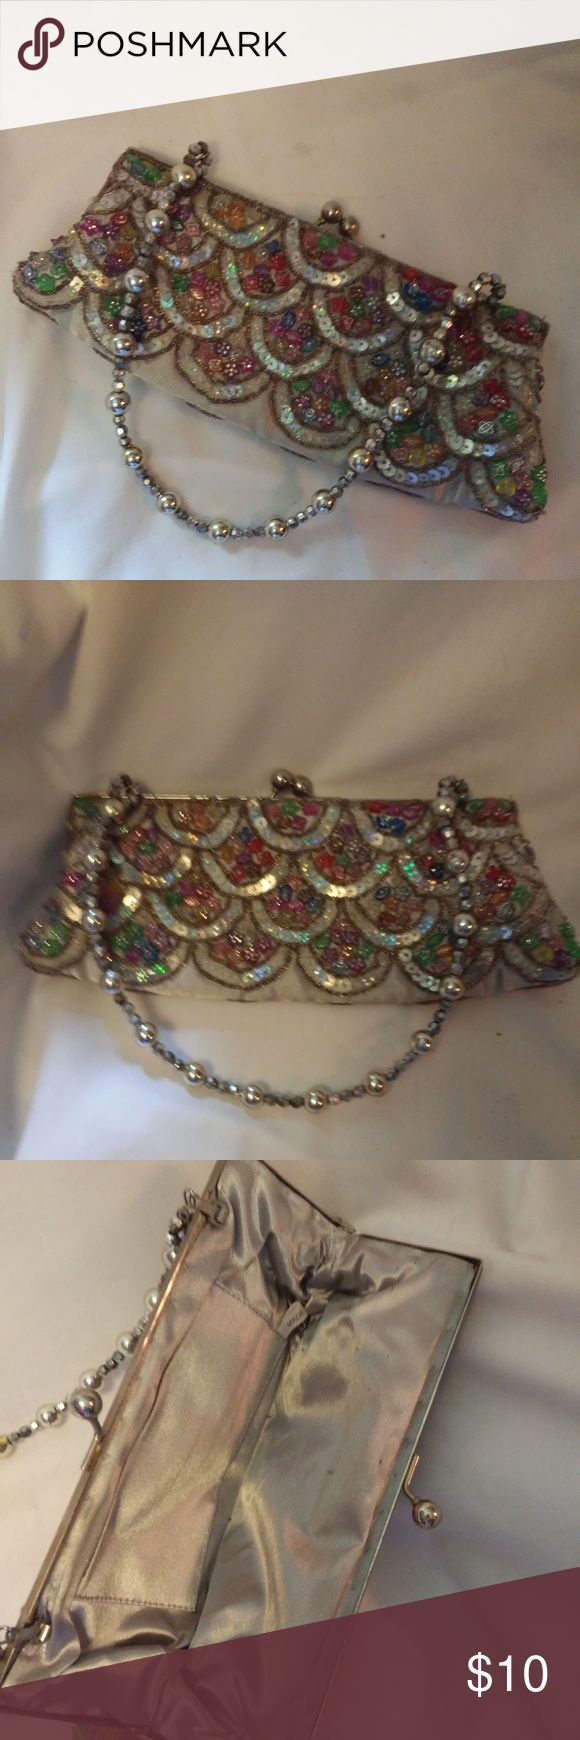 Sparkley clutch-multi-color with sequins Cute multi color clutch 9x4 inches.  Clean, no holes, cuts or stains.  I don't see any missing sparkles. Unknown Bags Clutches & Wristlets